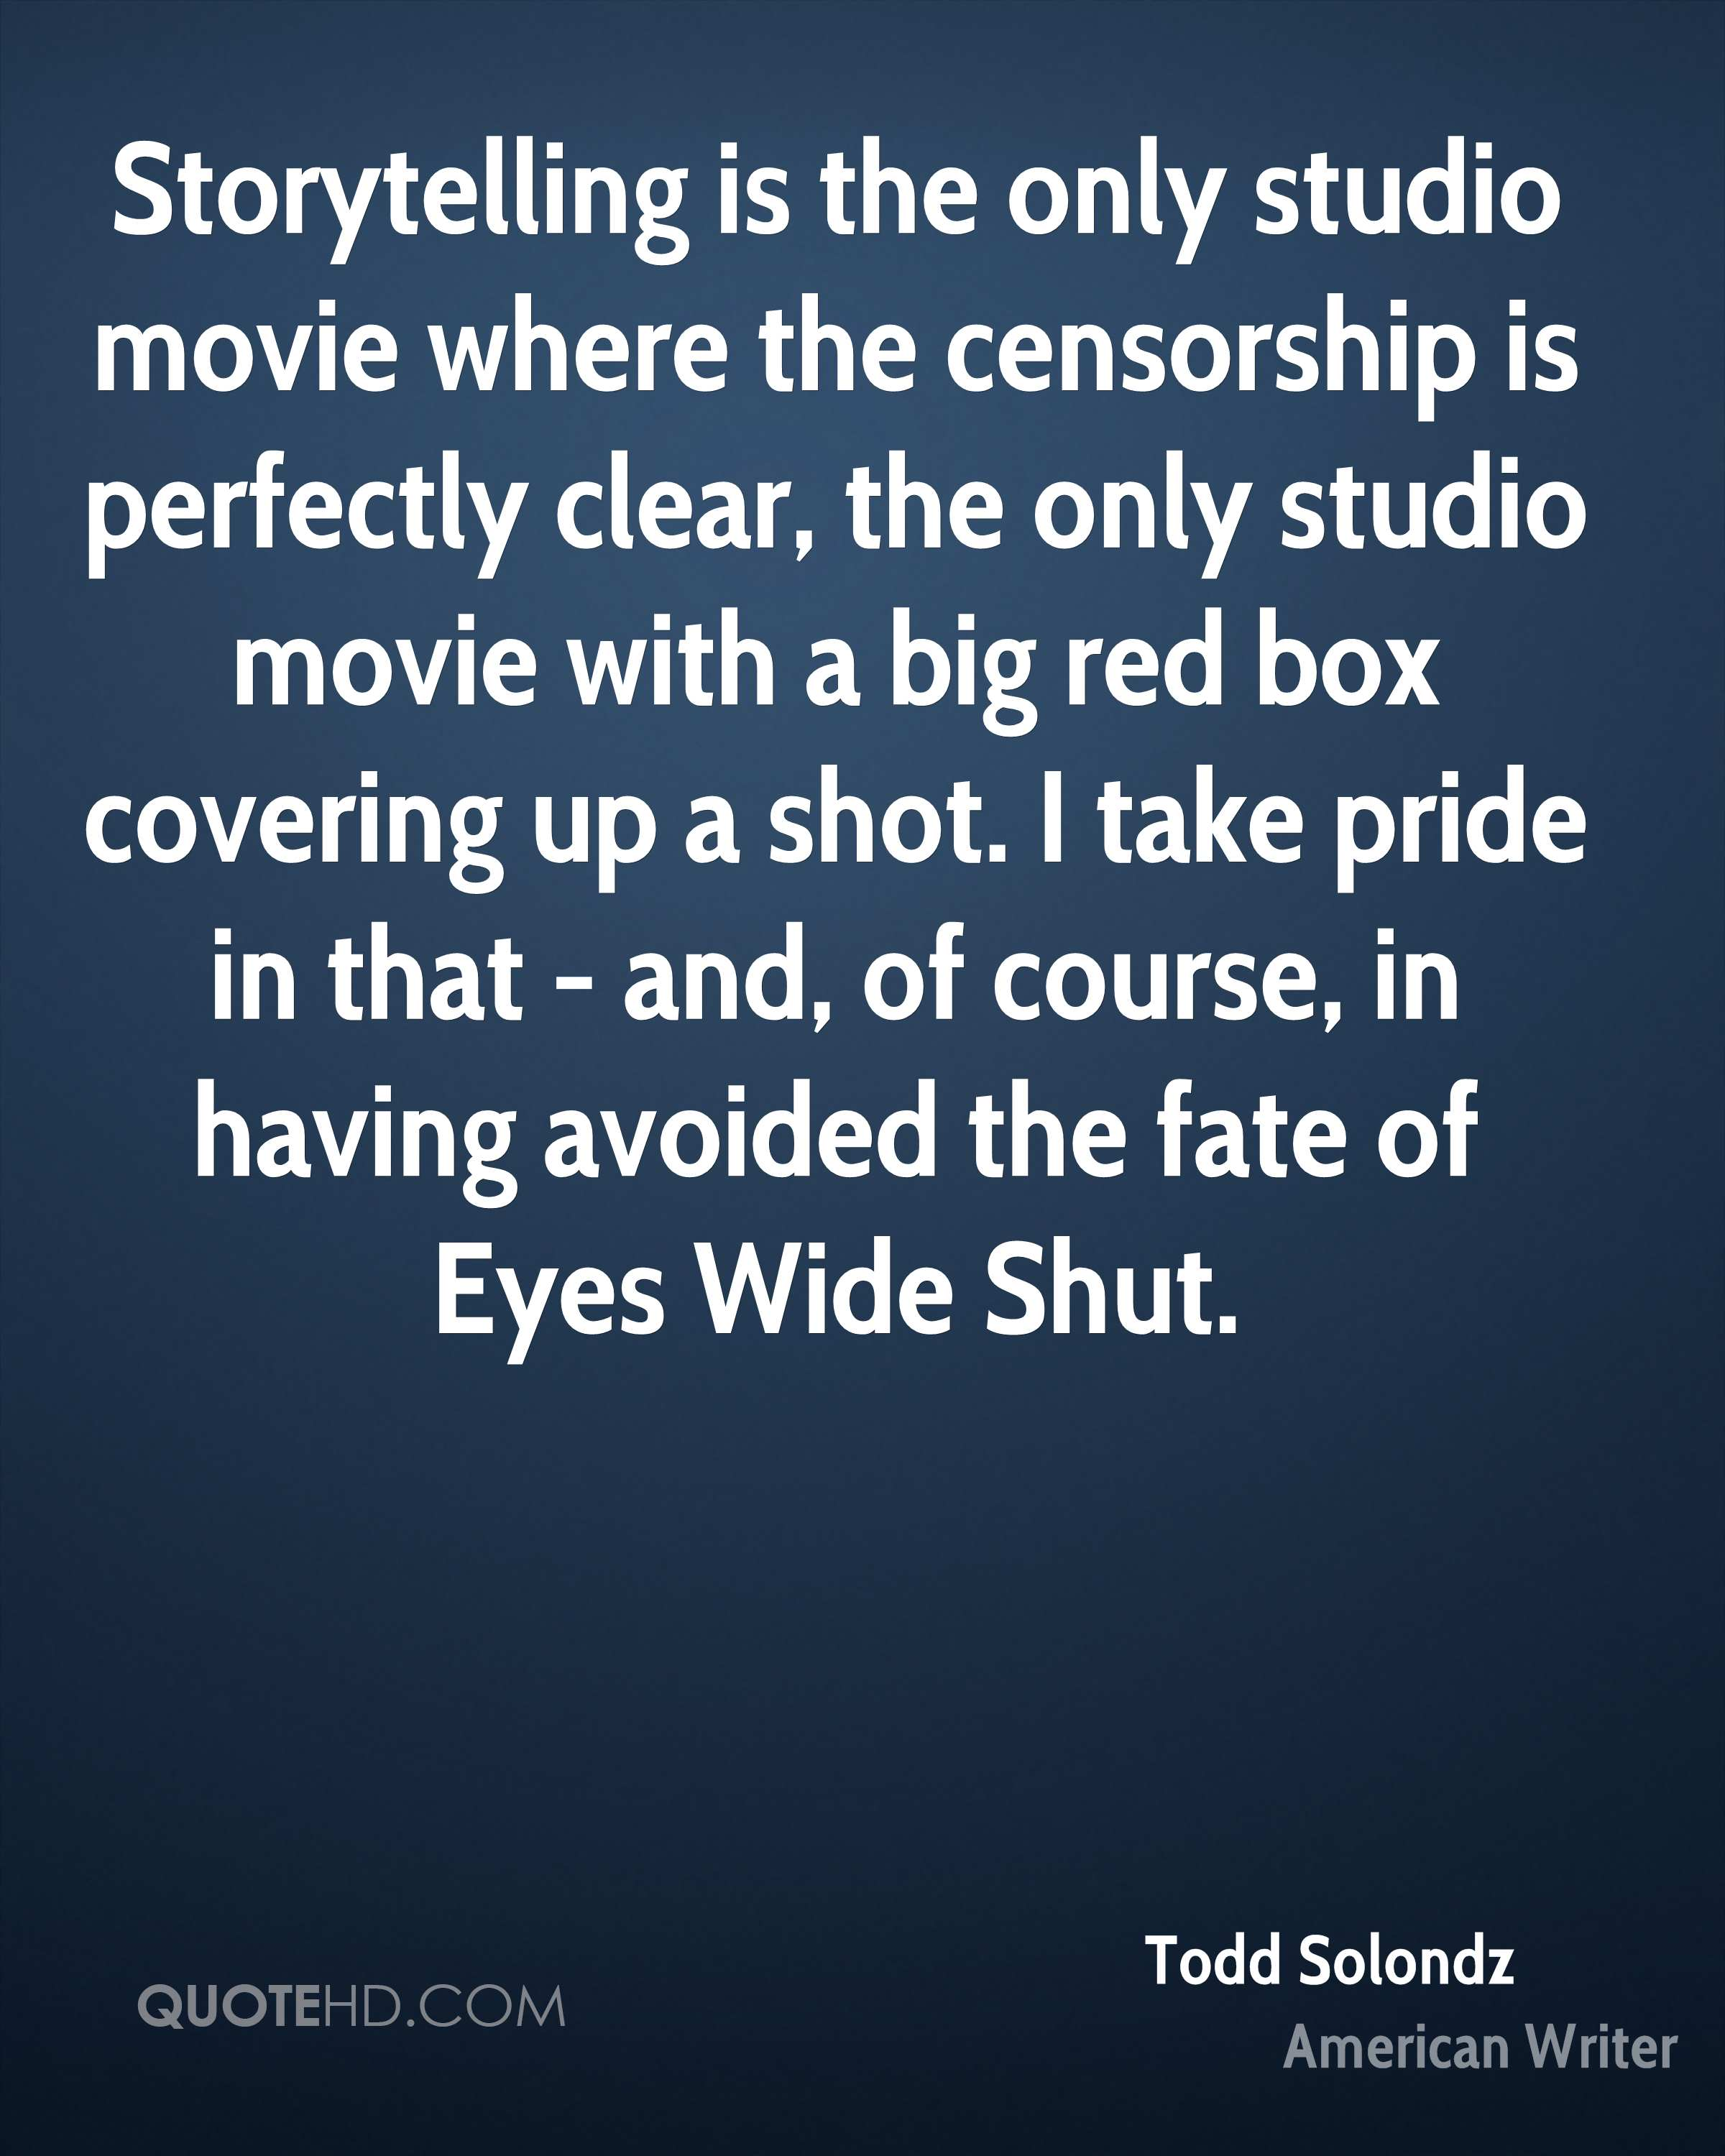 Storytelling is the only studio movie where the censorship is perfectly clear, the only studio movie with a big red box covering up a shot. I take pride in that - and, of course, in having avoided the fate of Eyes Wide Shut.